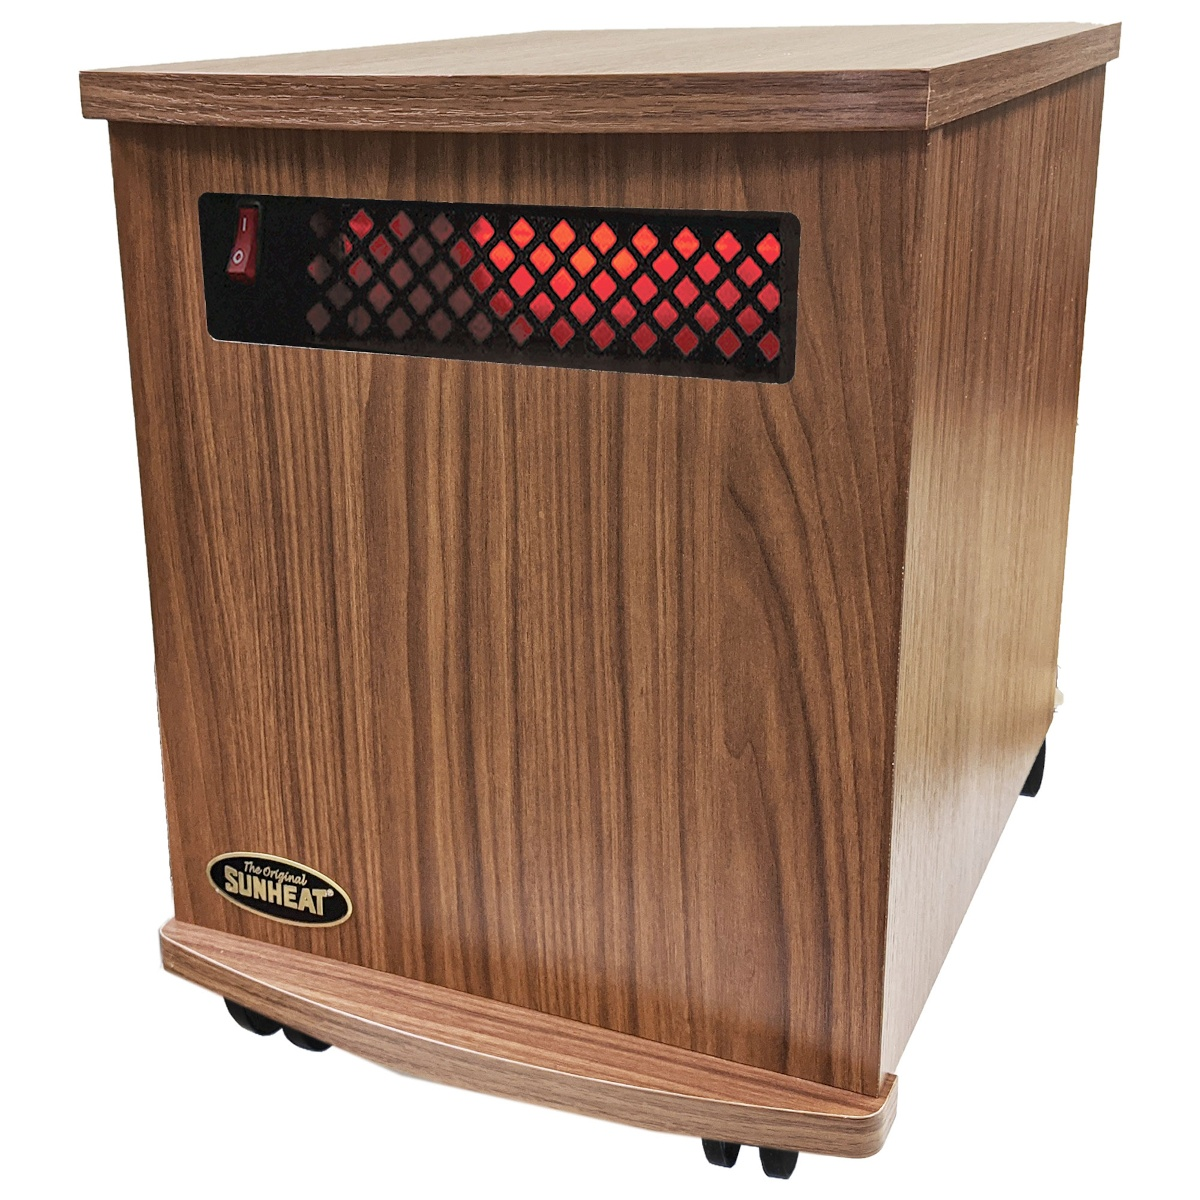 American Made Infrared Cabinet Portable Heater on Rollers by SUNHEAT USA1500-M American Walnut